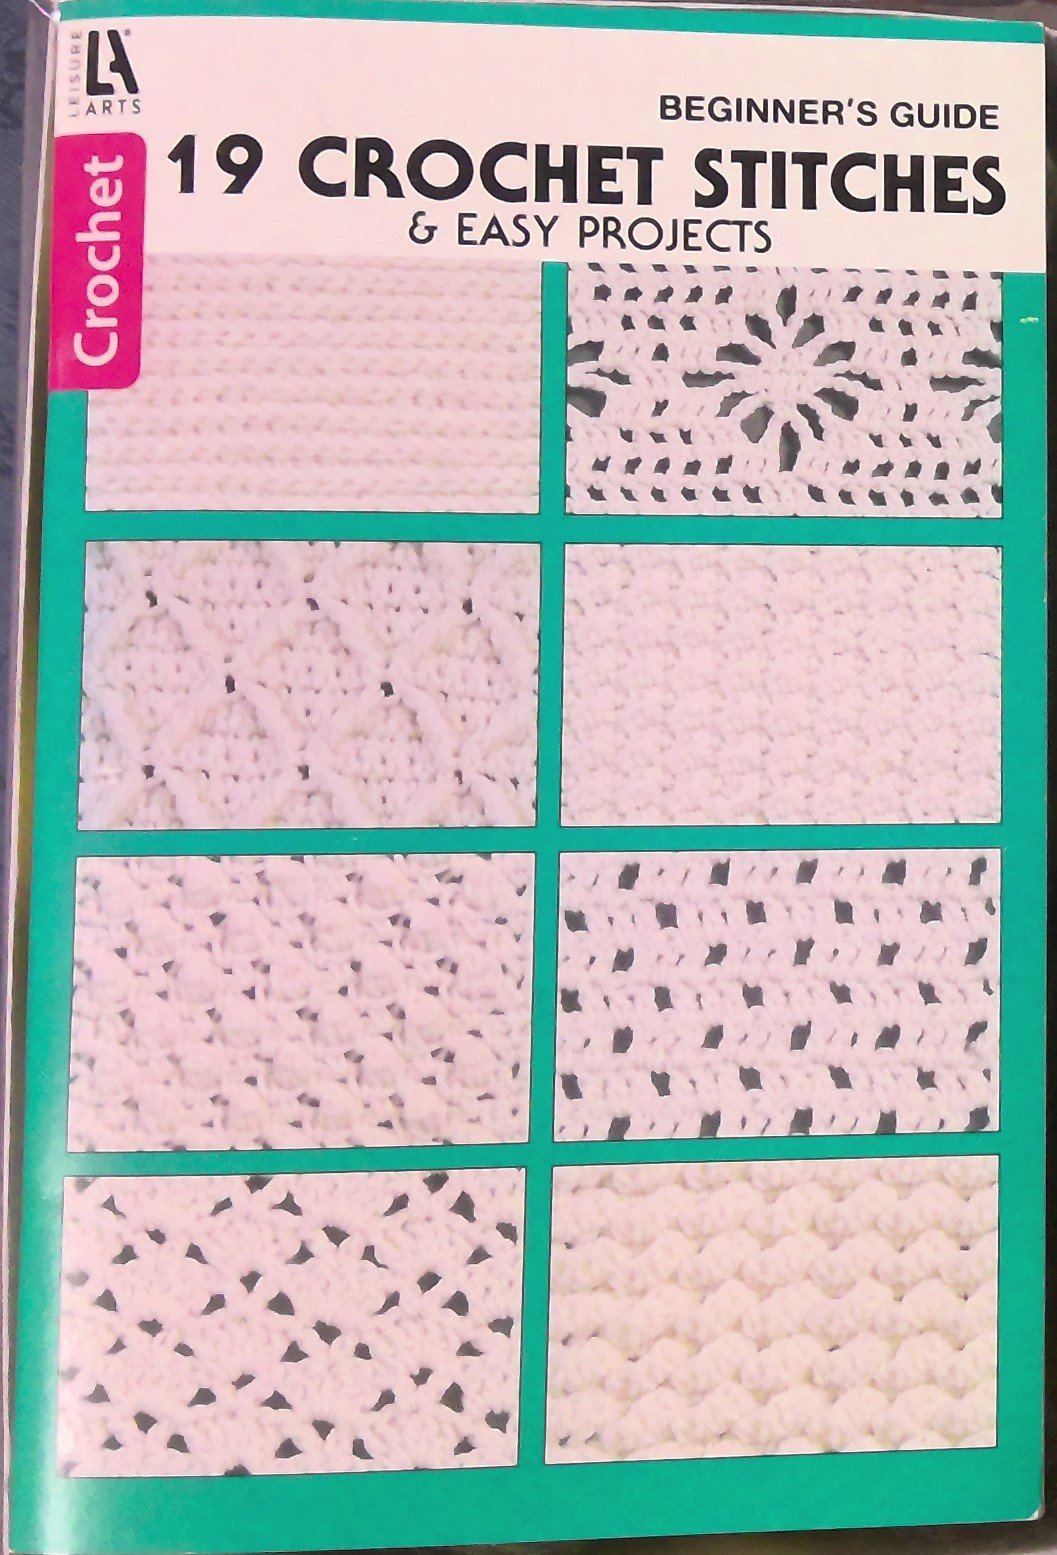 19 Crochet Stitches & Easy Projects